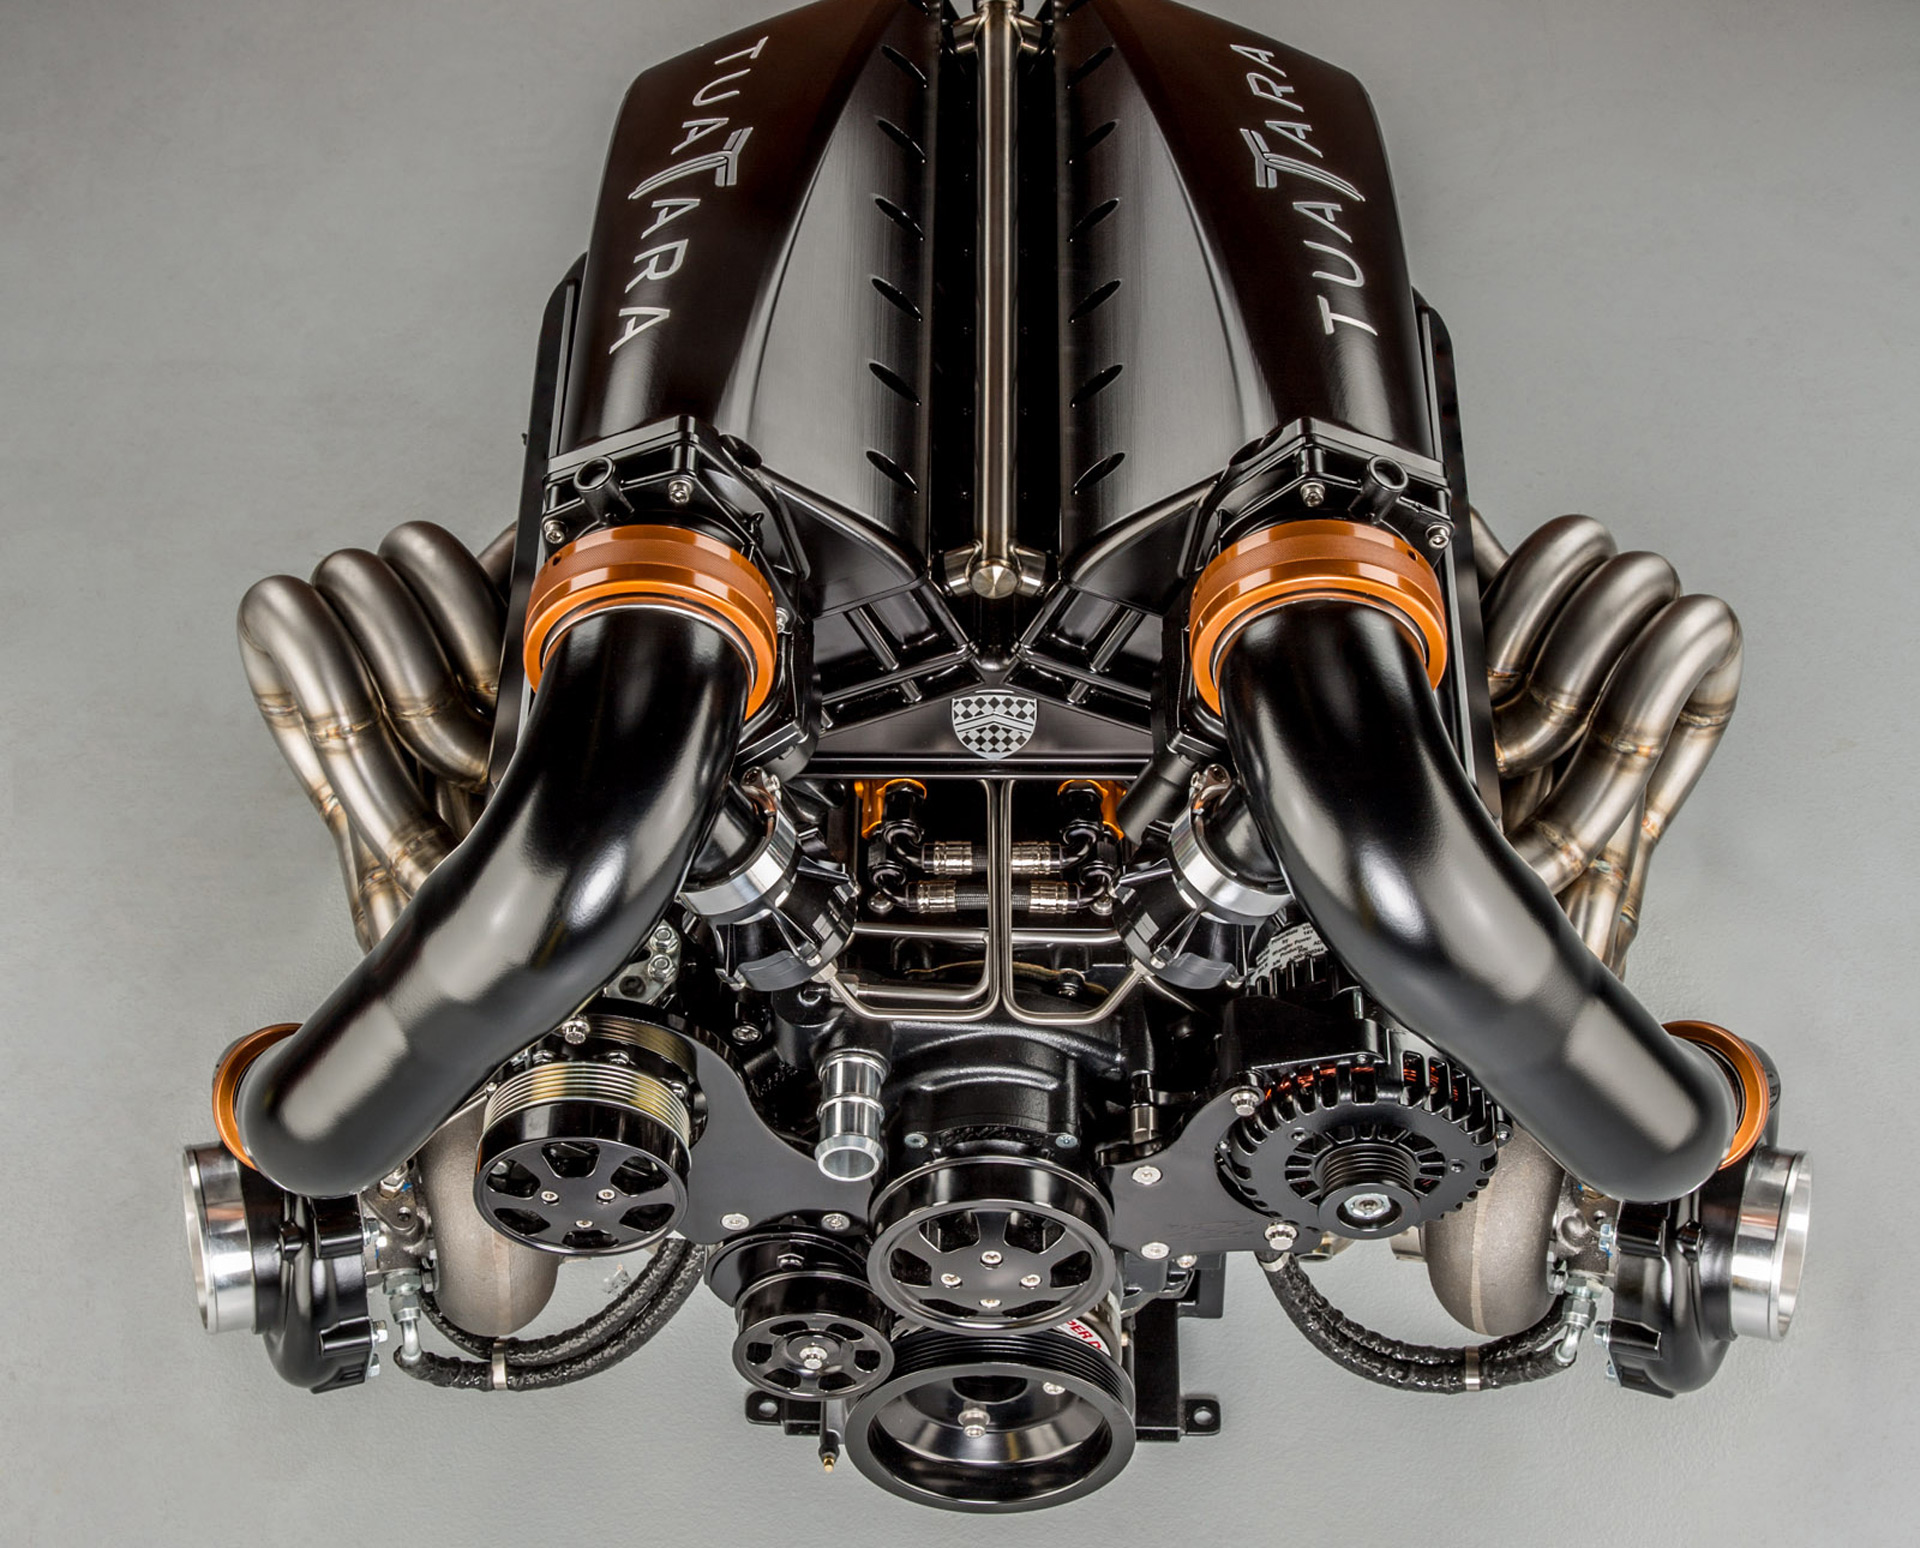 SSC_Tuatara_engine_0005